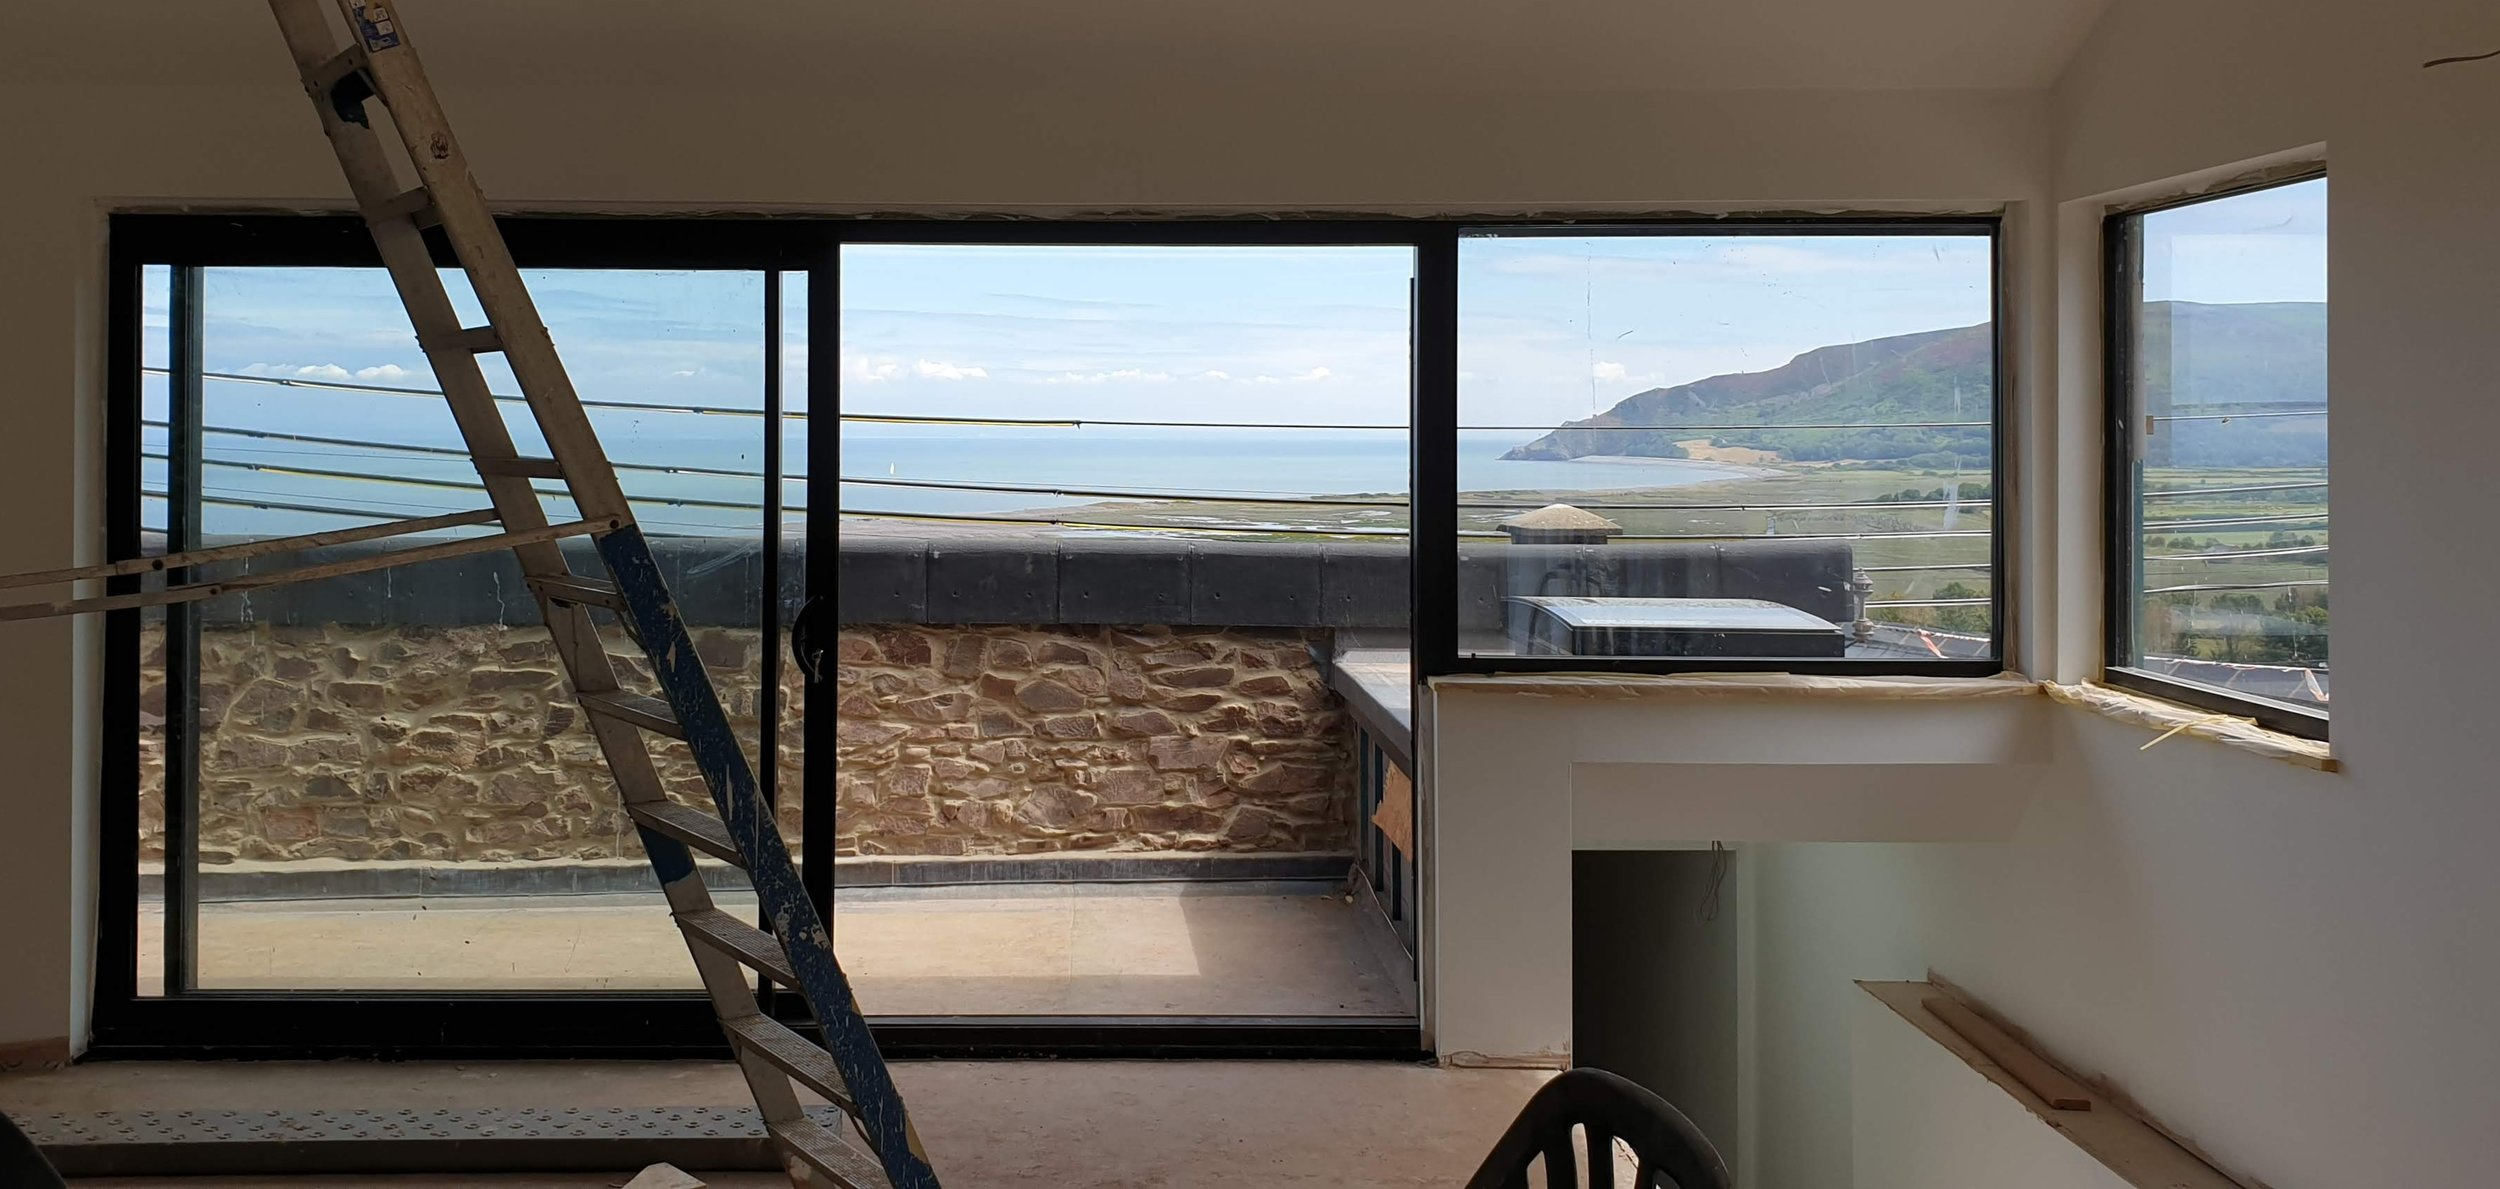 forge-planning-approval-exmoor-nick-thorne-glazing